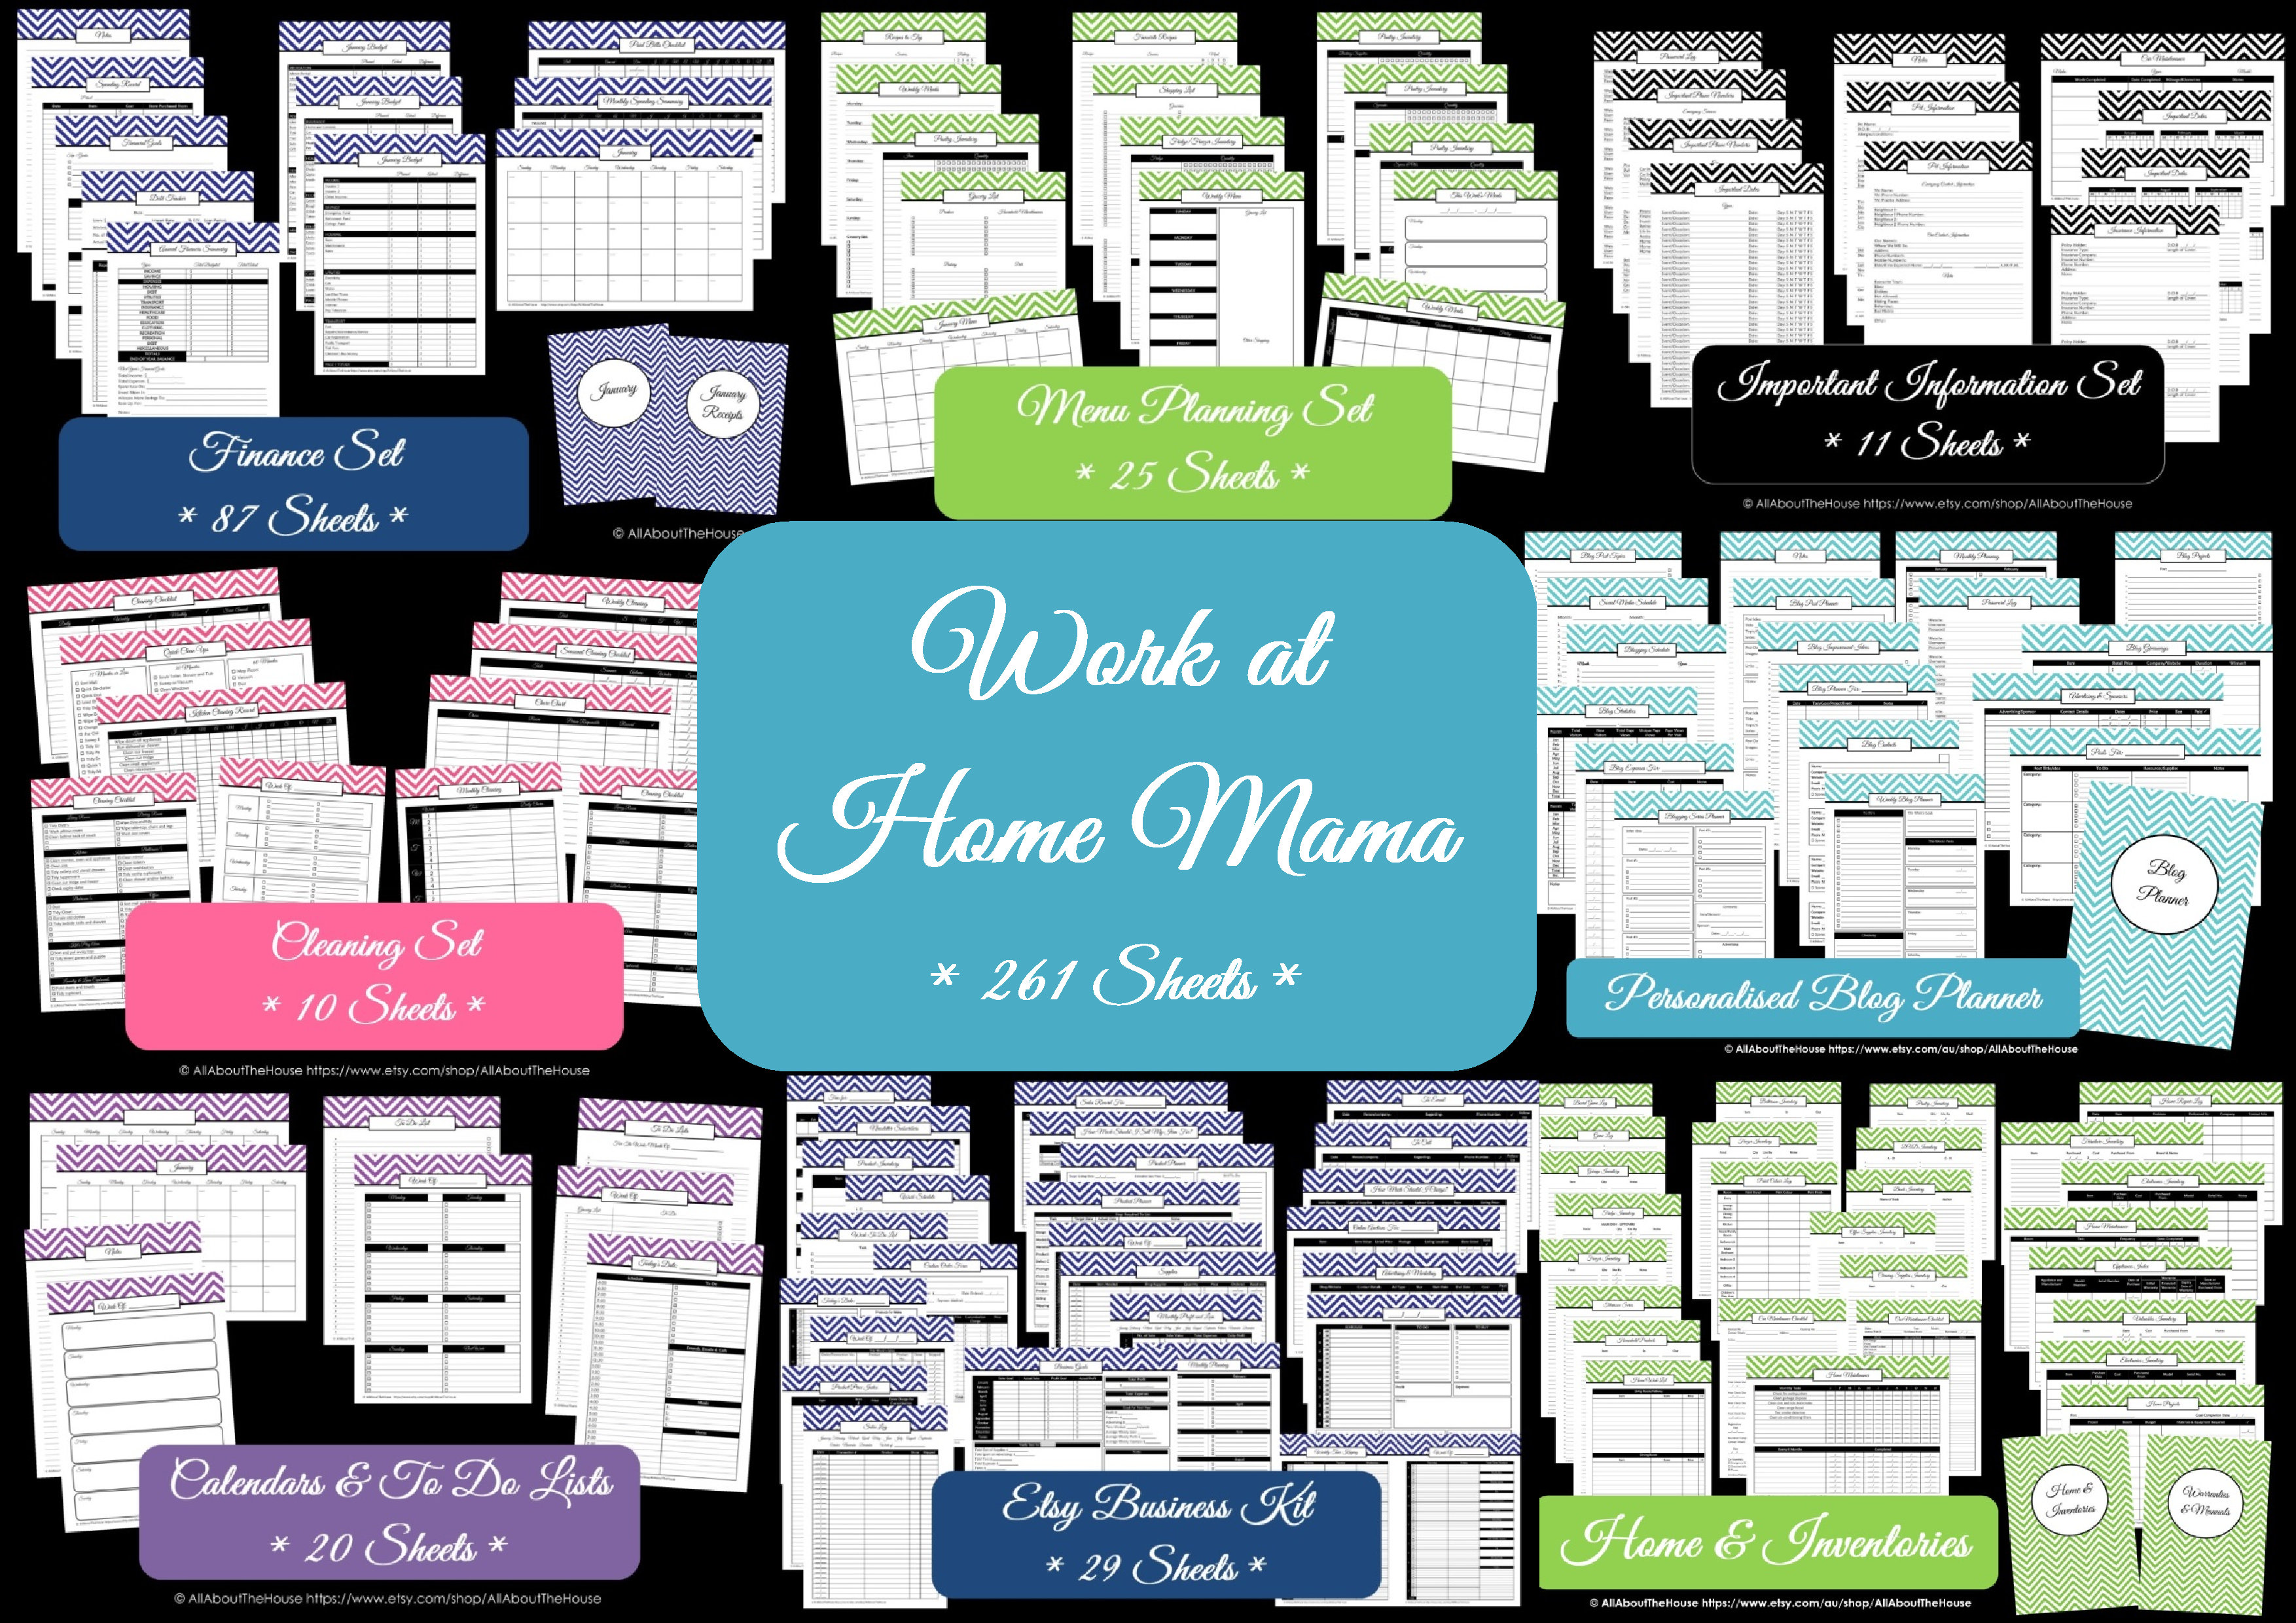 Work at Home Mama - AllAboutTheHouse